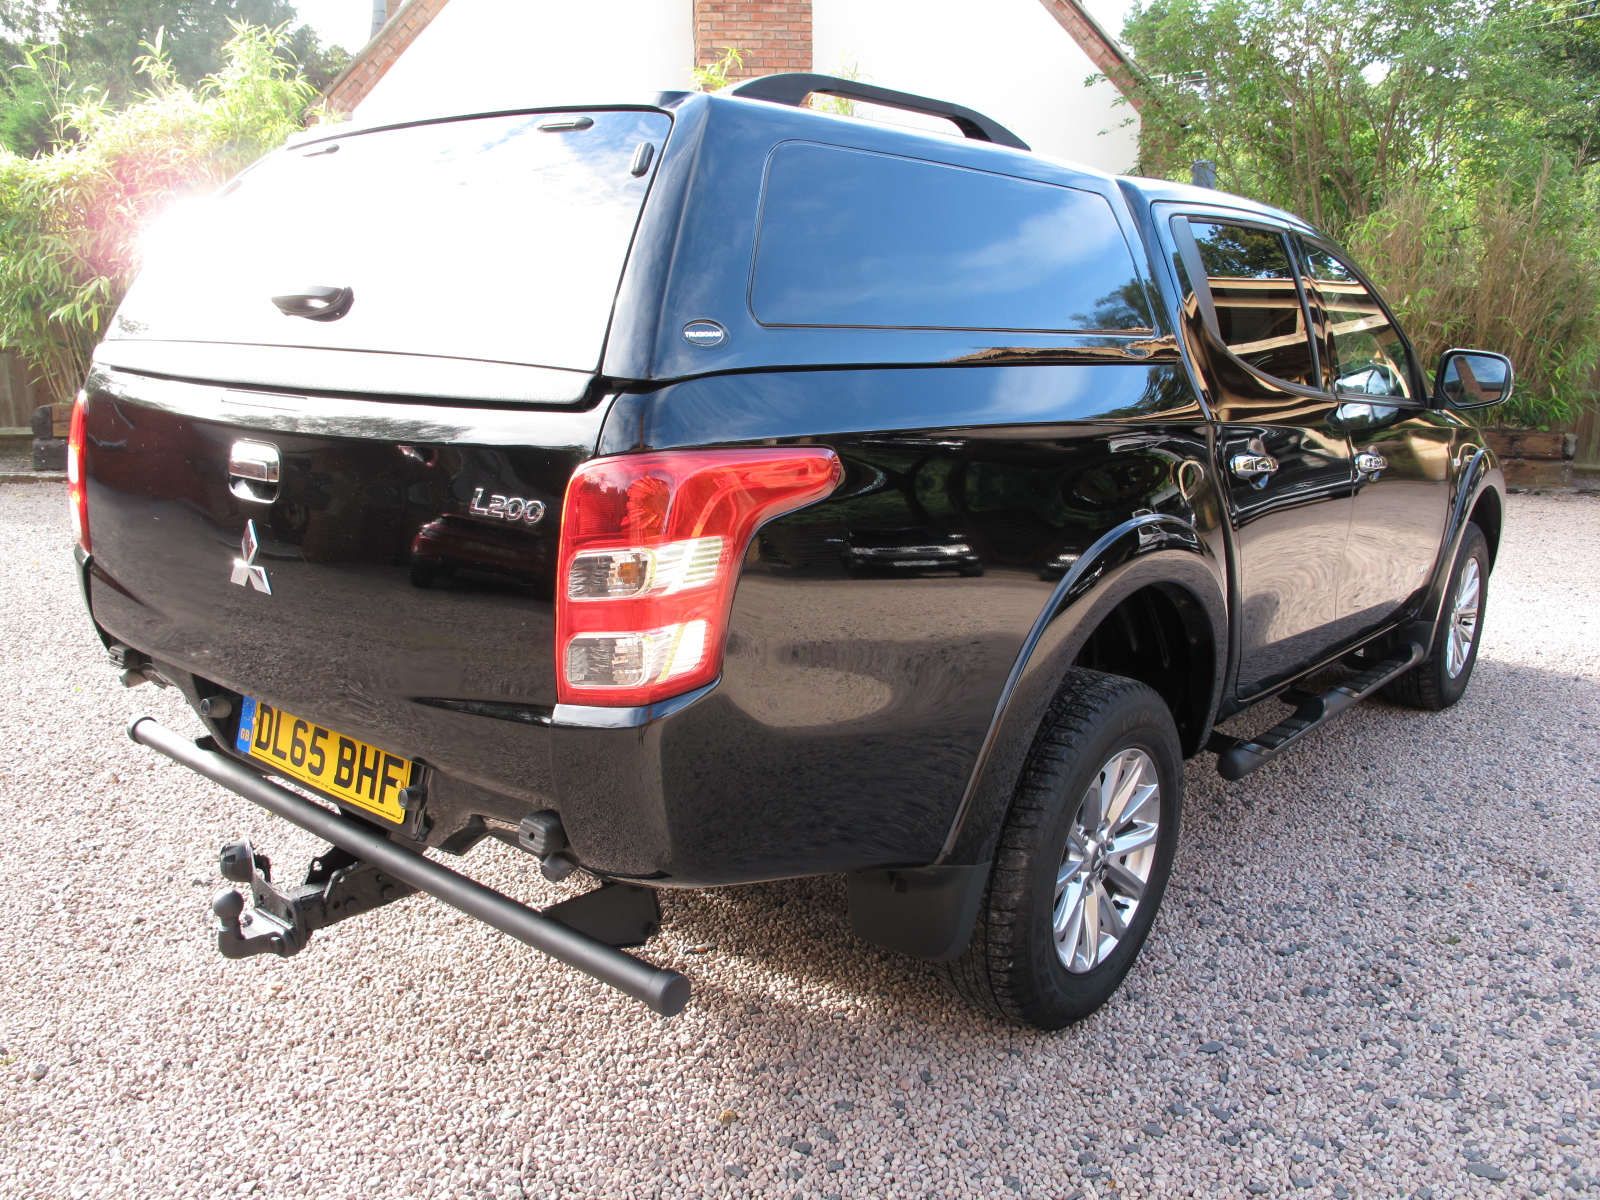 2015 65 Mitsubishi L200 2.4 DI-D DC Titan 4WD 4dr ABSOLUTELY PRISTINE CONDITION THROUGHOUT! ONLY USED AS A CAR! NO VAT! SOLD! full